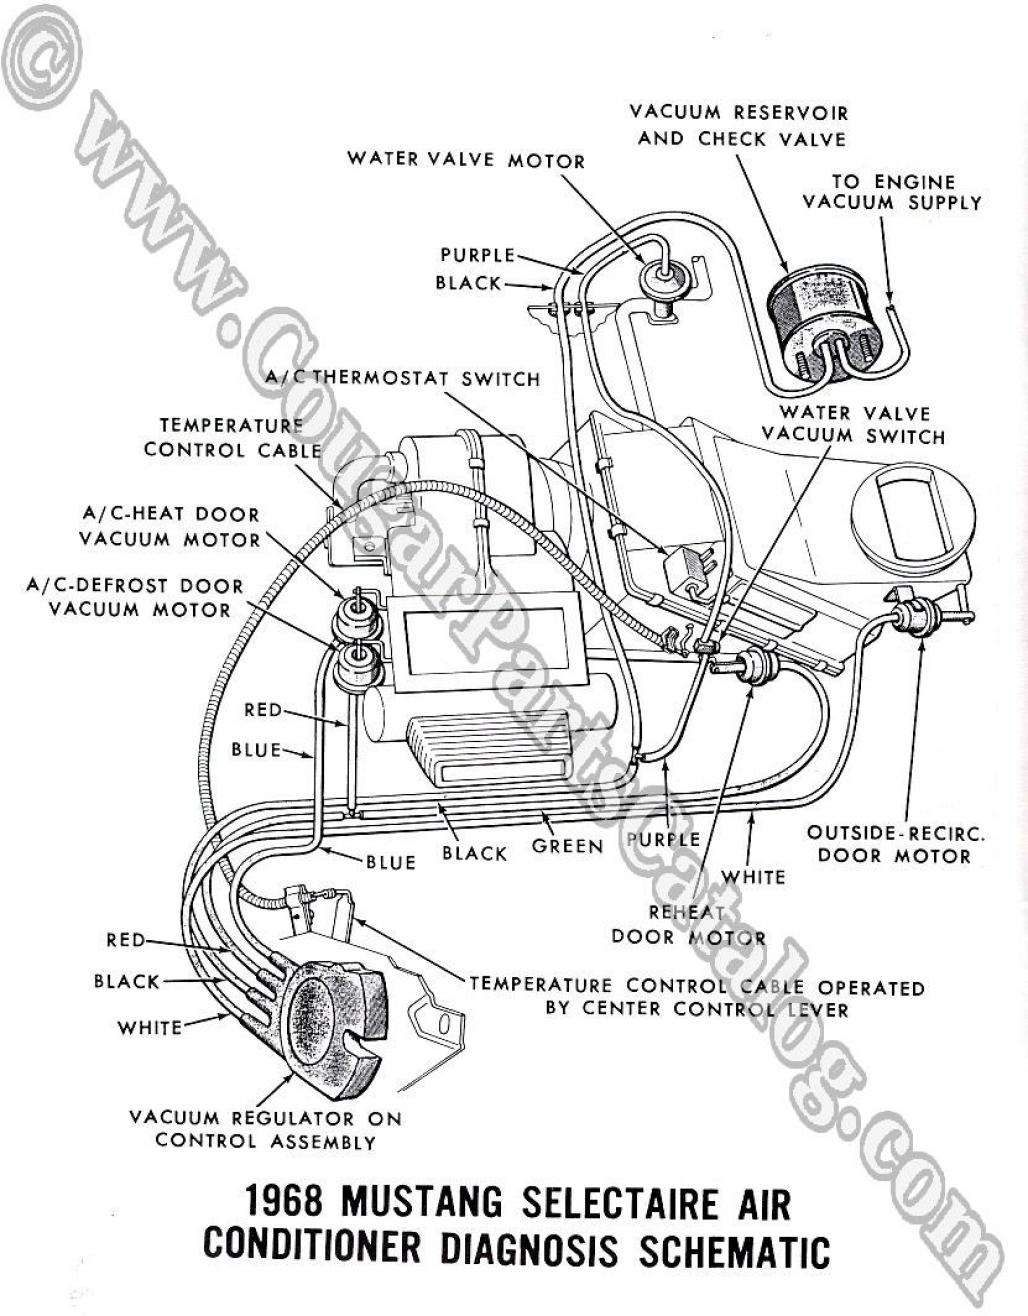 hight resolution of 1973 cougar wiring diagram wiring library1973 cougar wiring diagram images gallery